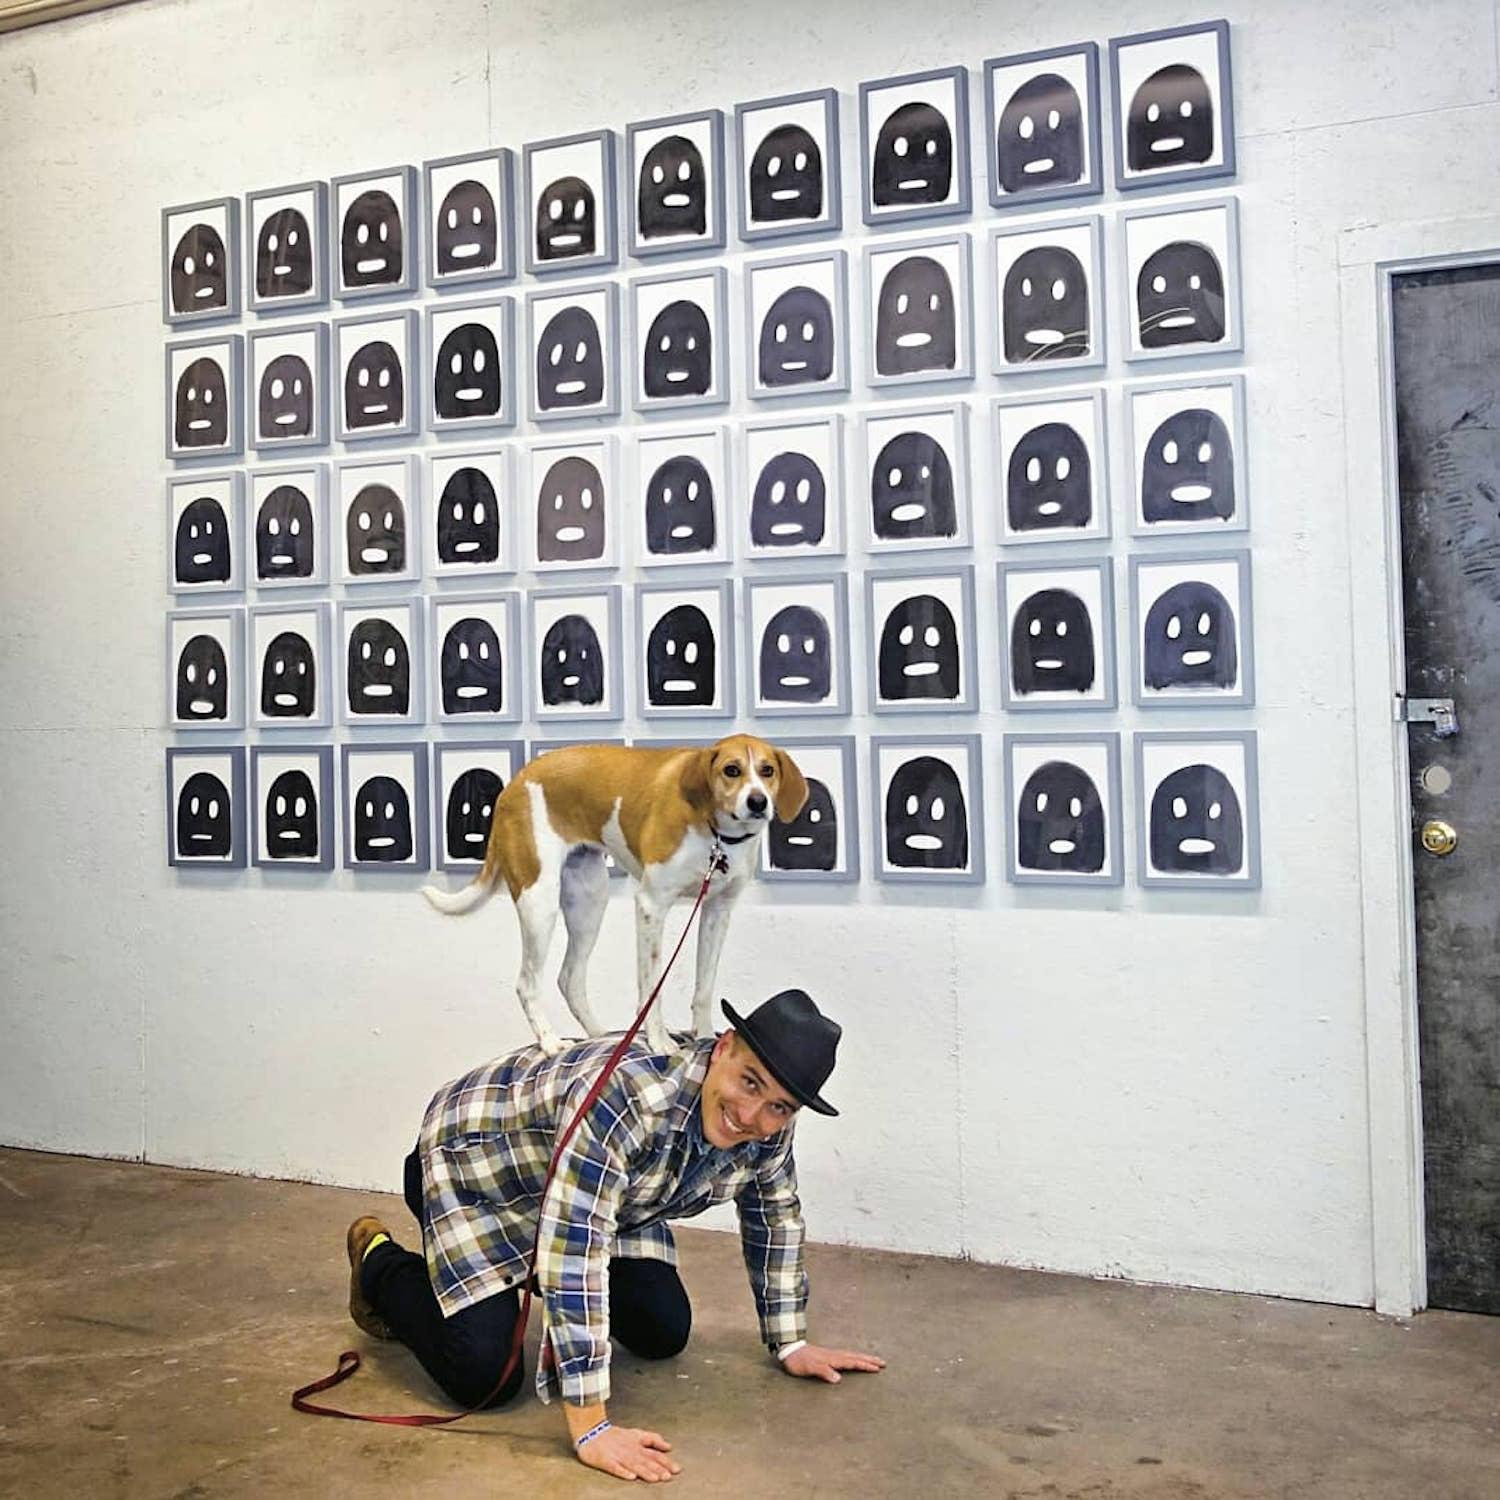 "LOCATION: Michael Stilloin's ""Ghosts"" at DC Smith and Co Art Gallery at Felsenhous 242 / Mollie is a local Instagram celebrity. Famous for posing on fire hydrants in front of ArtWorks murals (and other Cincy landmarks), this hound dog has officially stolen our hearts. You can follow her adventures on Instagram @molliethehounddoggie / Image: Patti Mossey (Mollie's owner and #1 fan) // Published: 5.1.18"